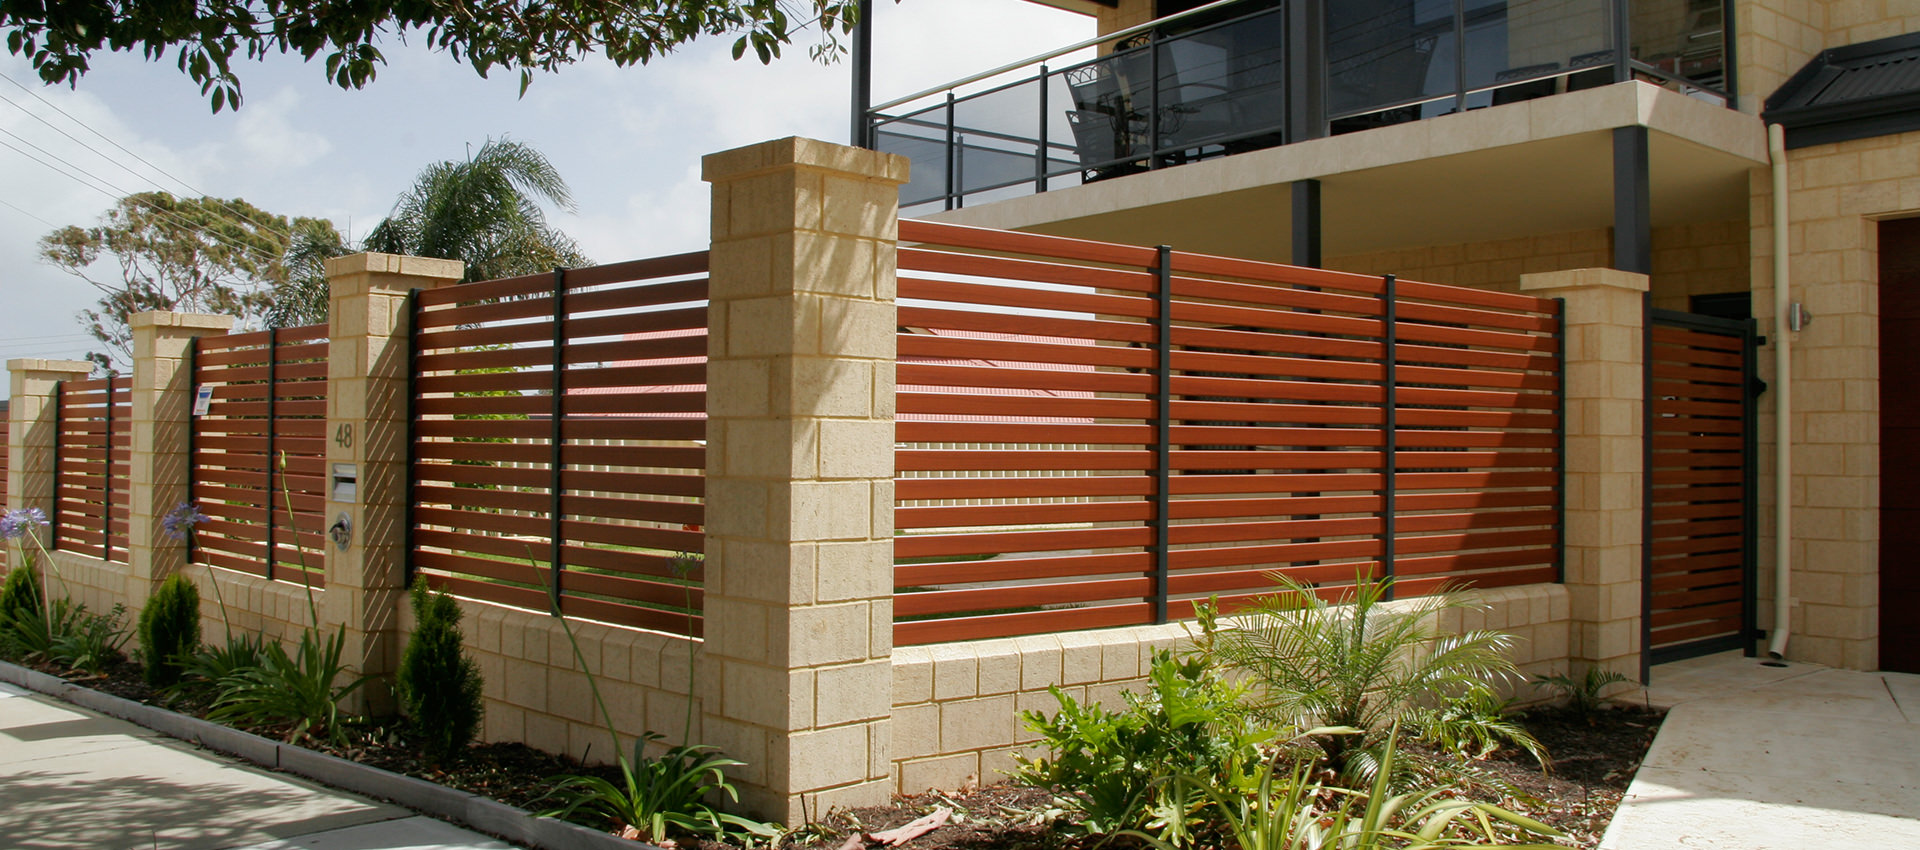 Bamboo Screen Perth Aluminium Fencing Slat Shade Blinds Perth